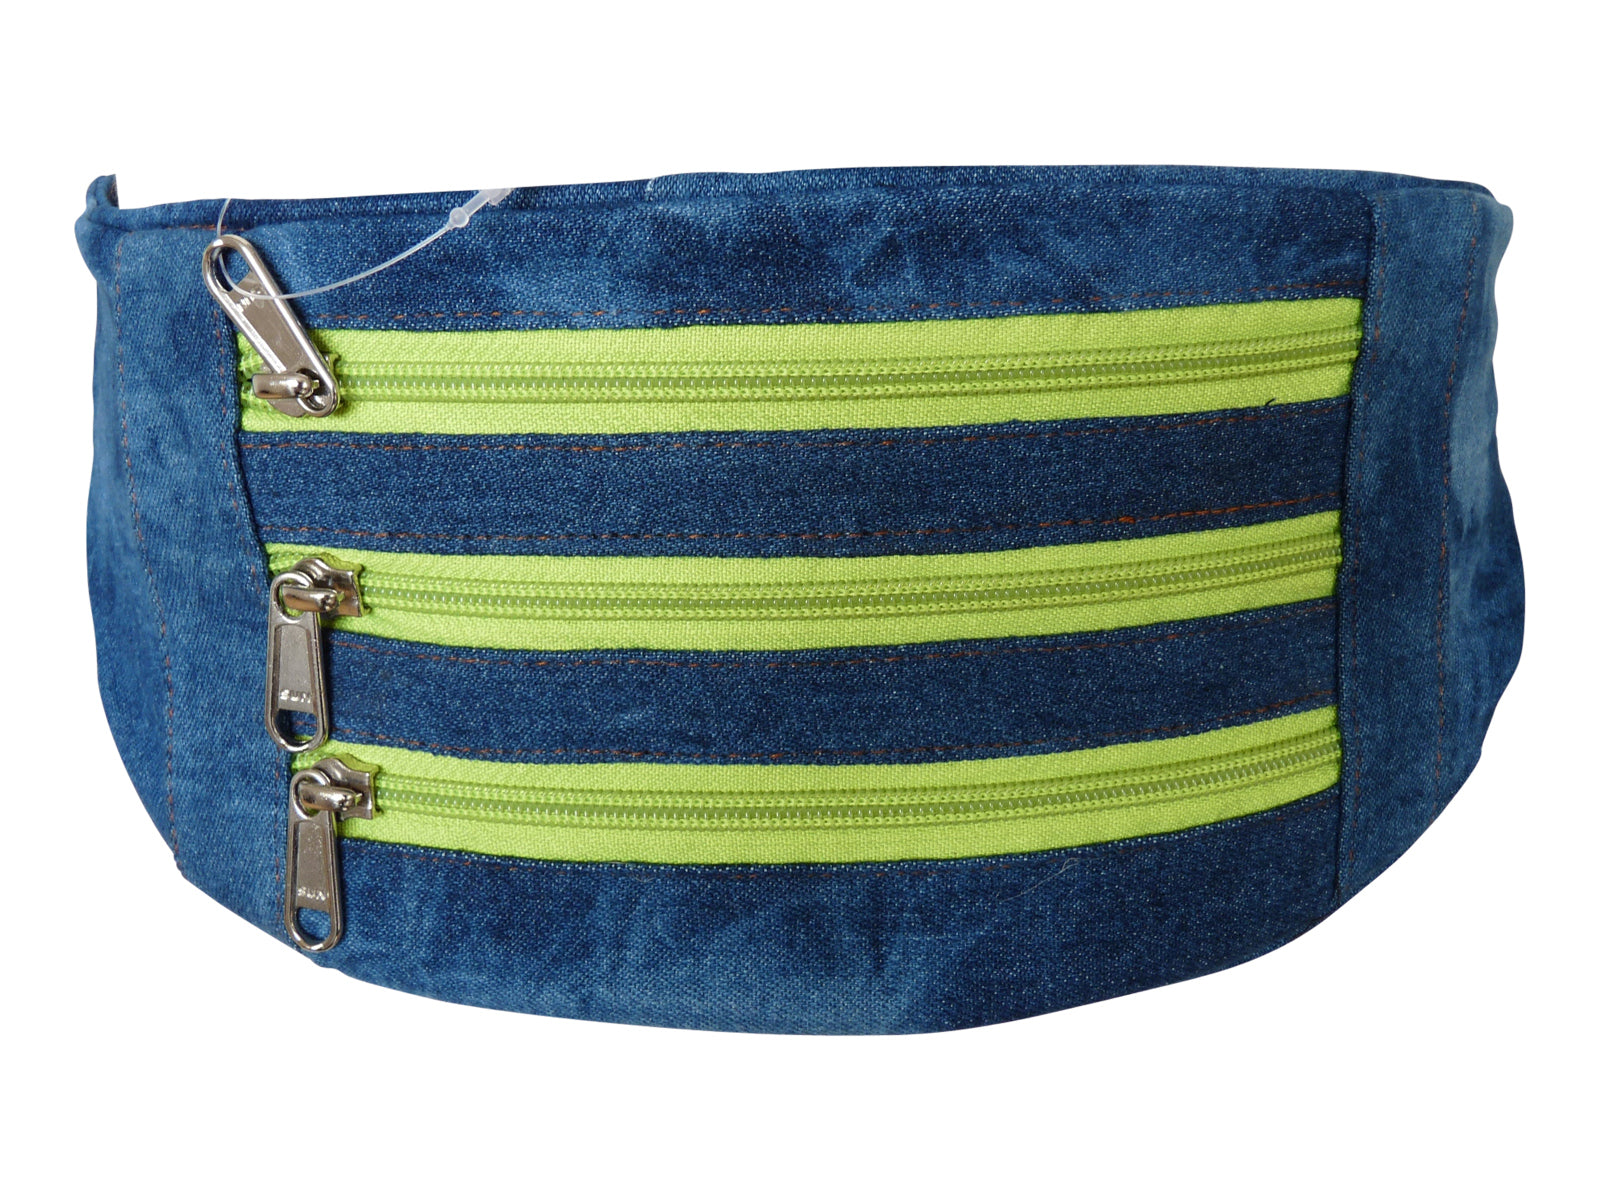 Flat Denim Bumbag RL252DLGZ light green zips